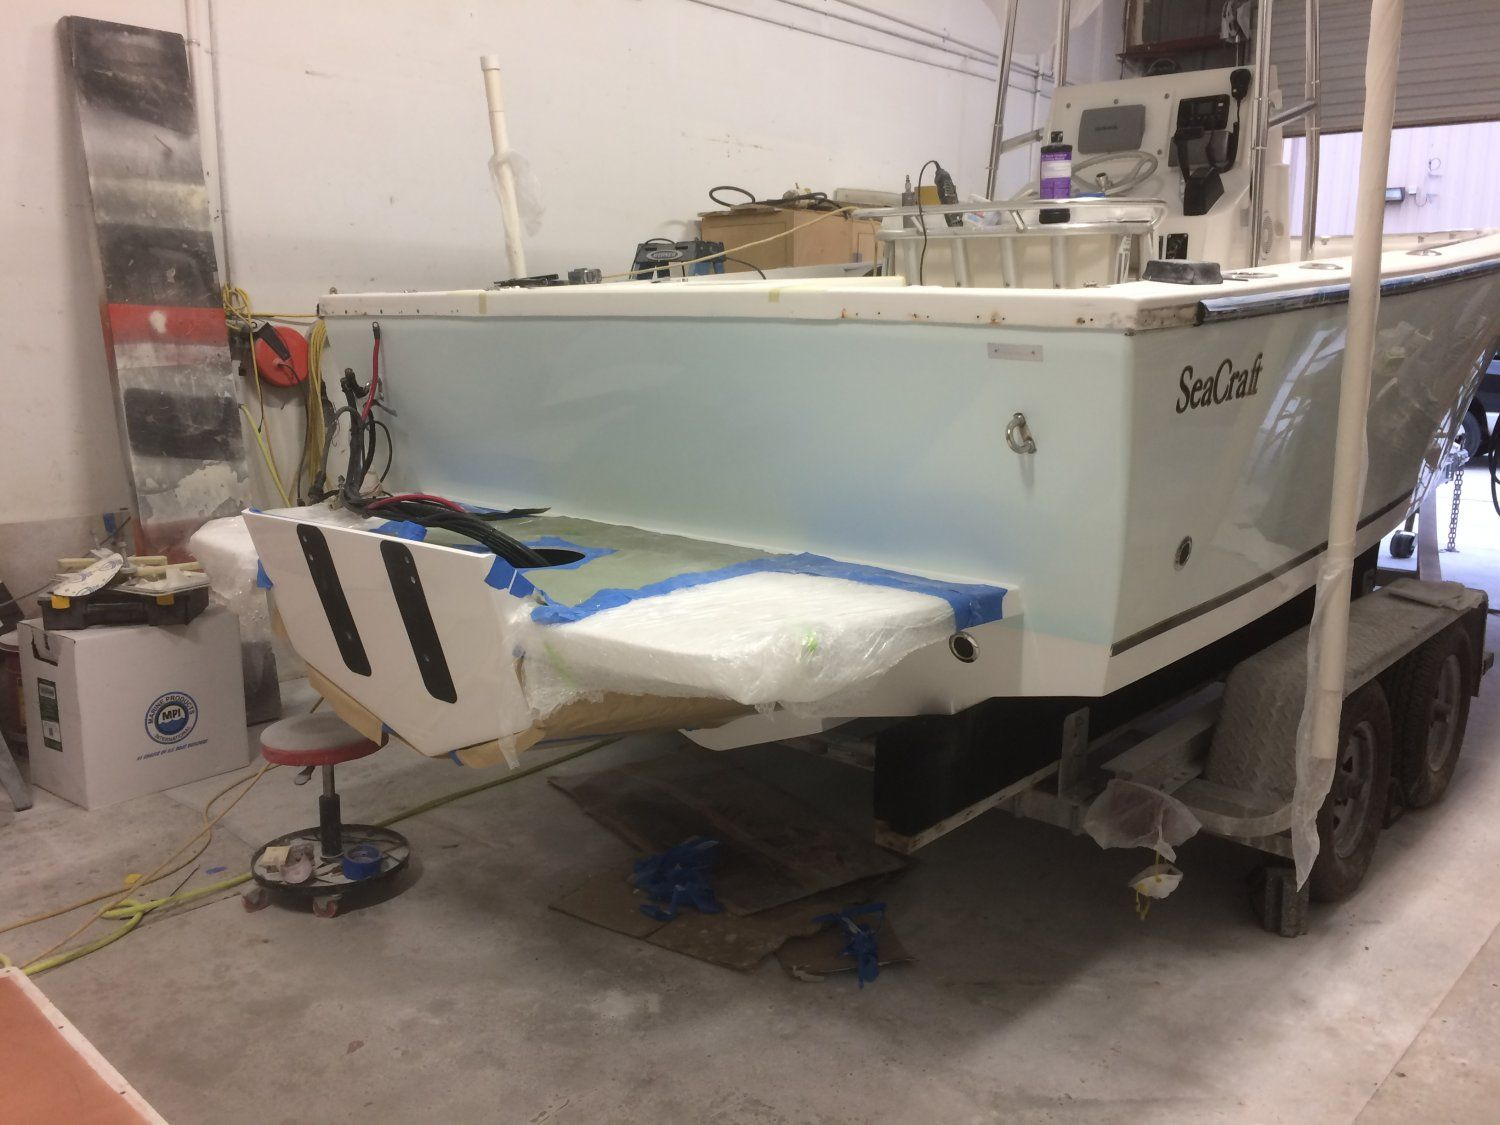 21 Seacraft Bracket Install The Hull Truth Boating And Fishing Forum Boat Boat Seats Hull